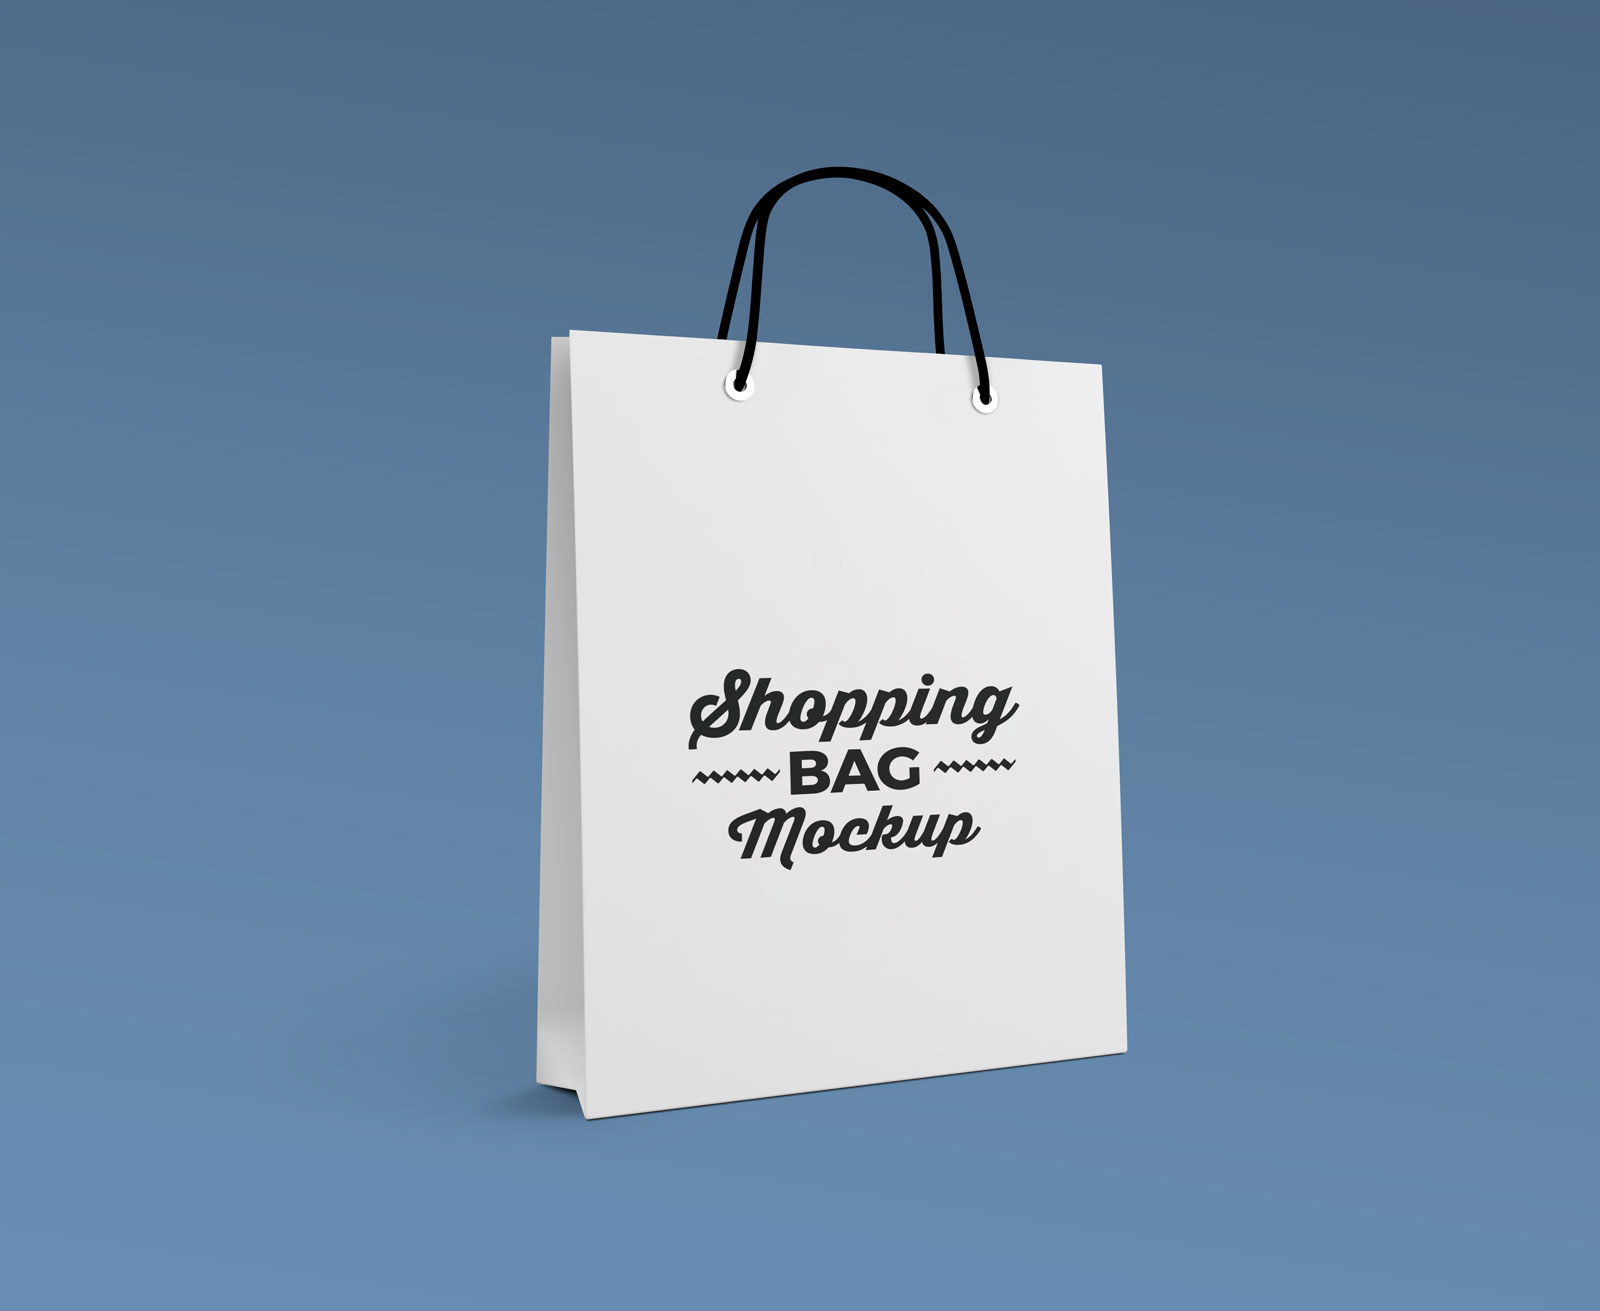 Free-White-Shopping-Bag-Mockup-PSD